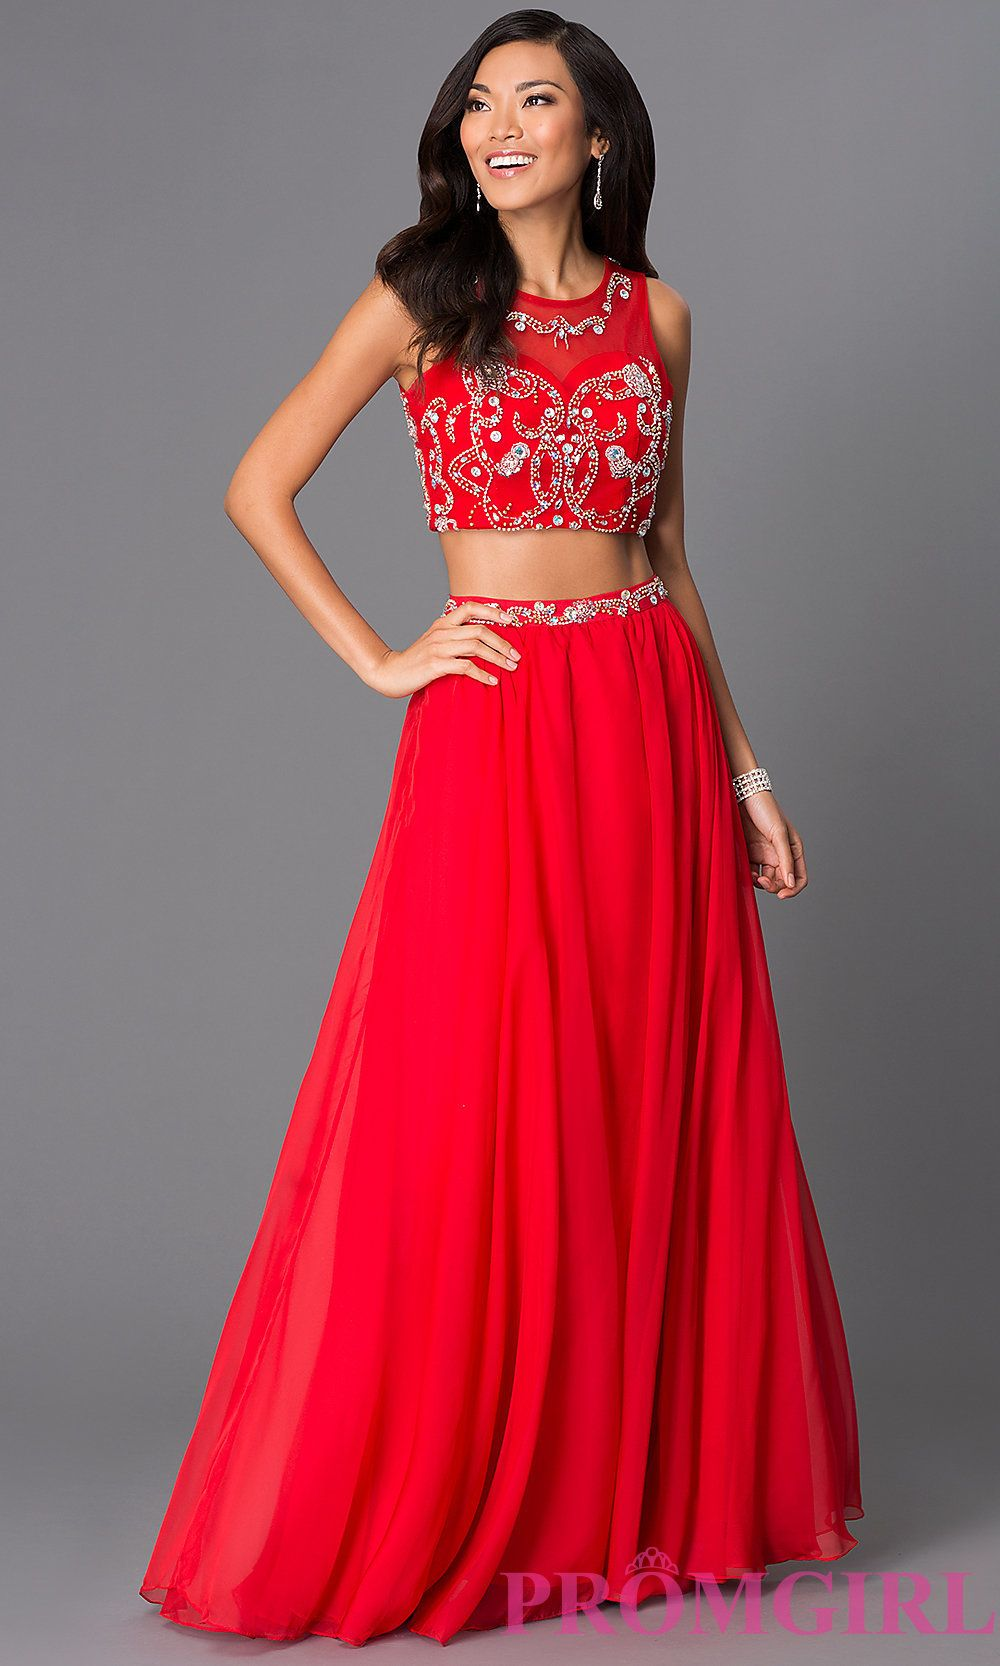 Two Piece Floor Length Gown 8152 Style: NA 8152